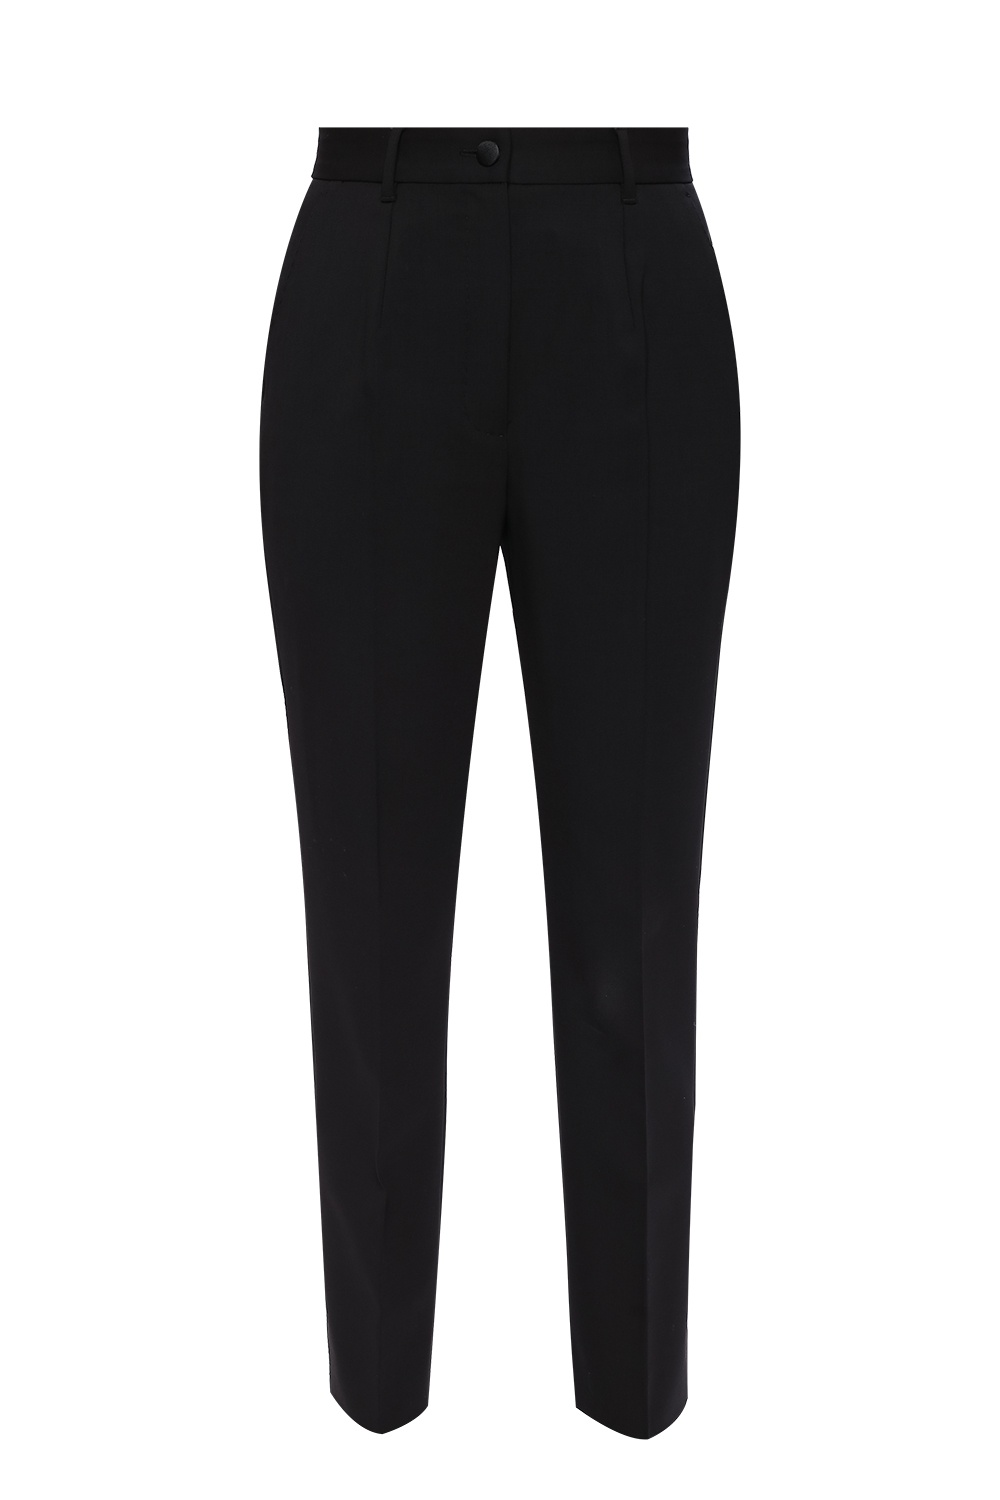 Dolce & Gabbana Wool pleat-front trousers